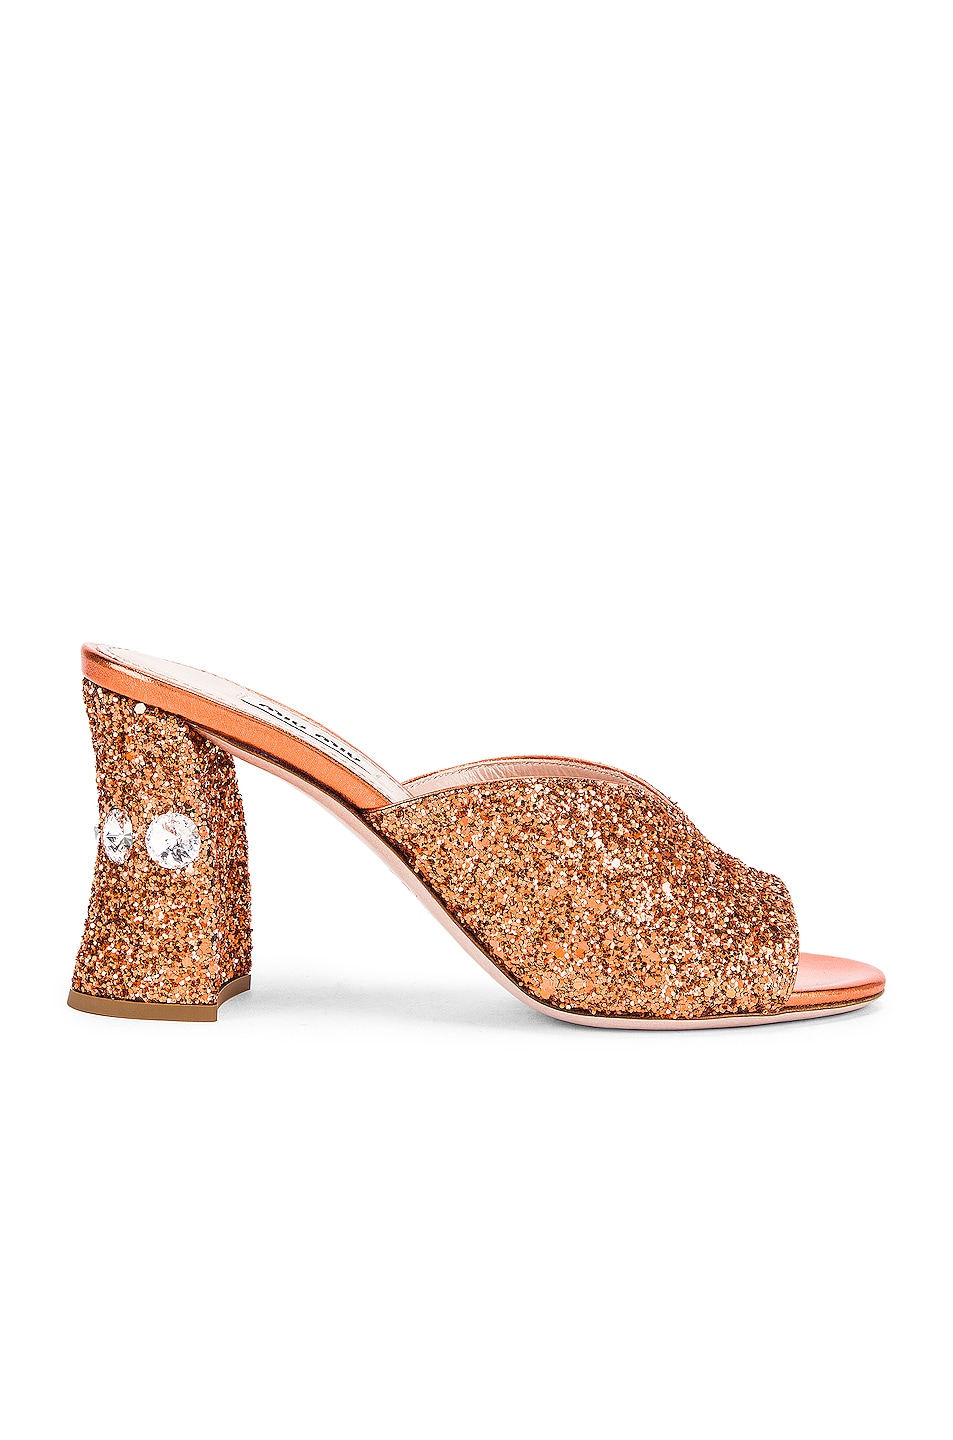 Image 1 of Miu Miu Glitter Jeweled Mules in Rame